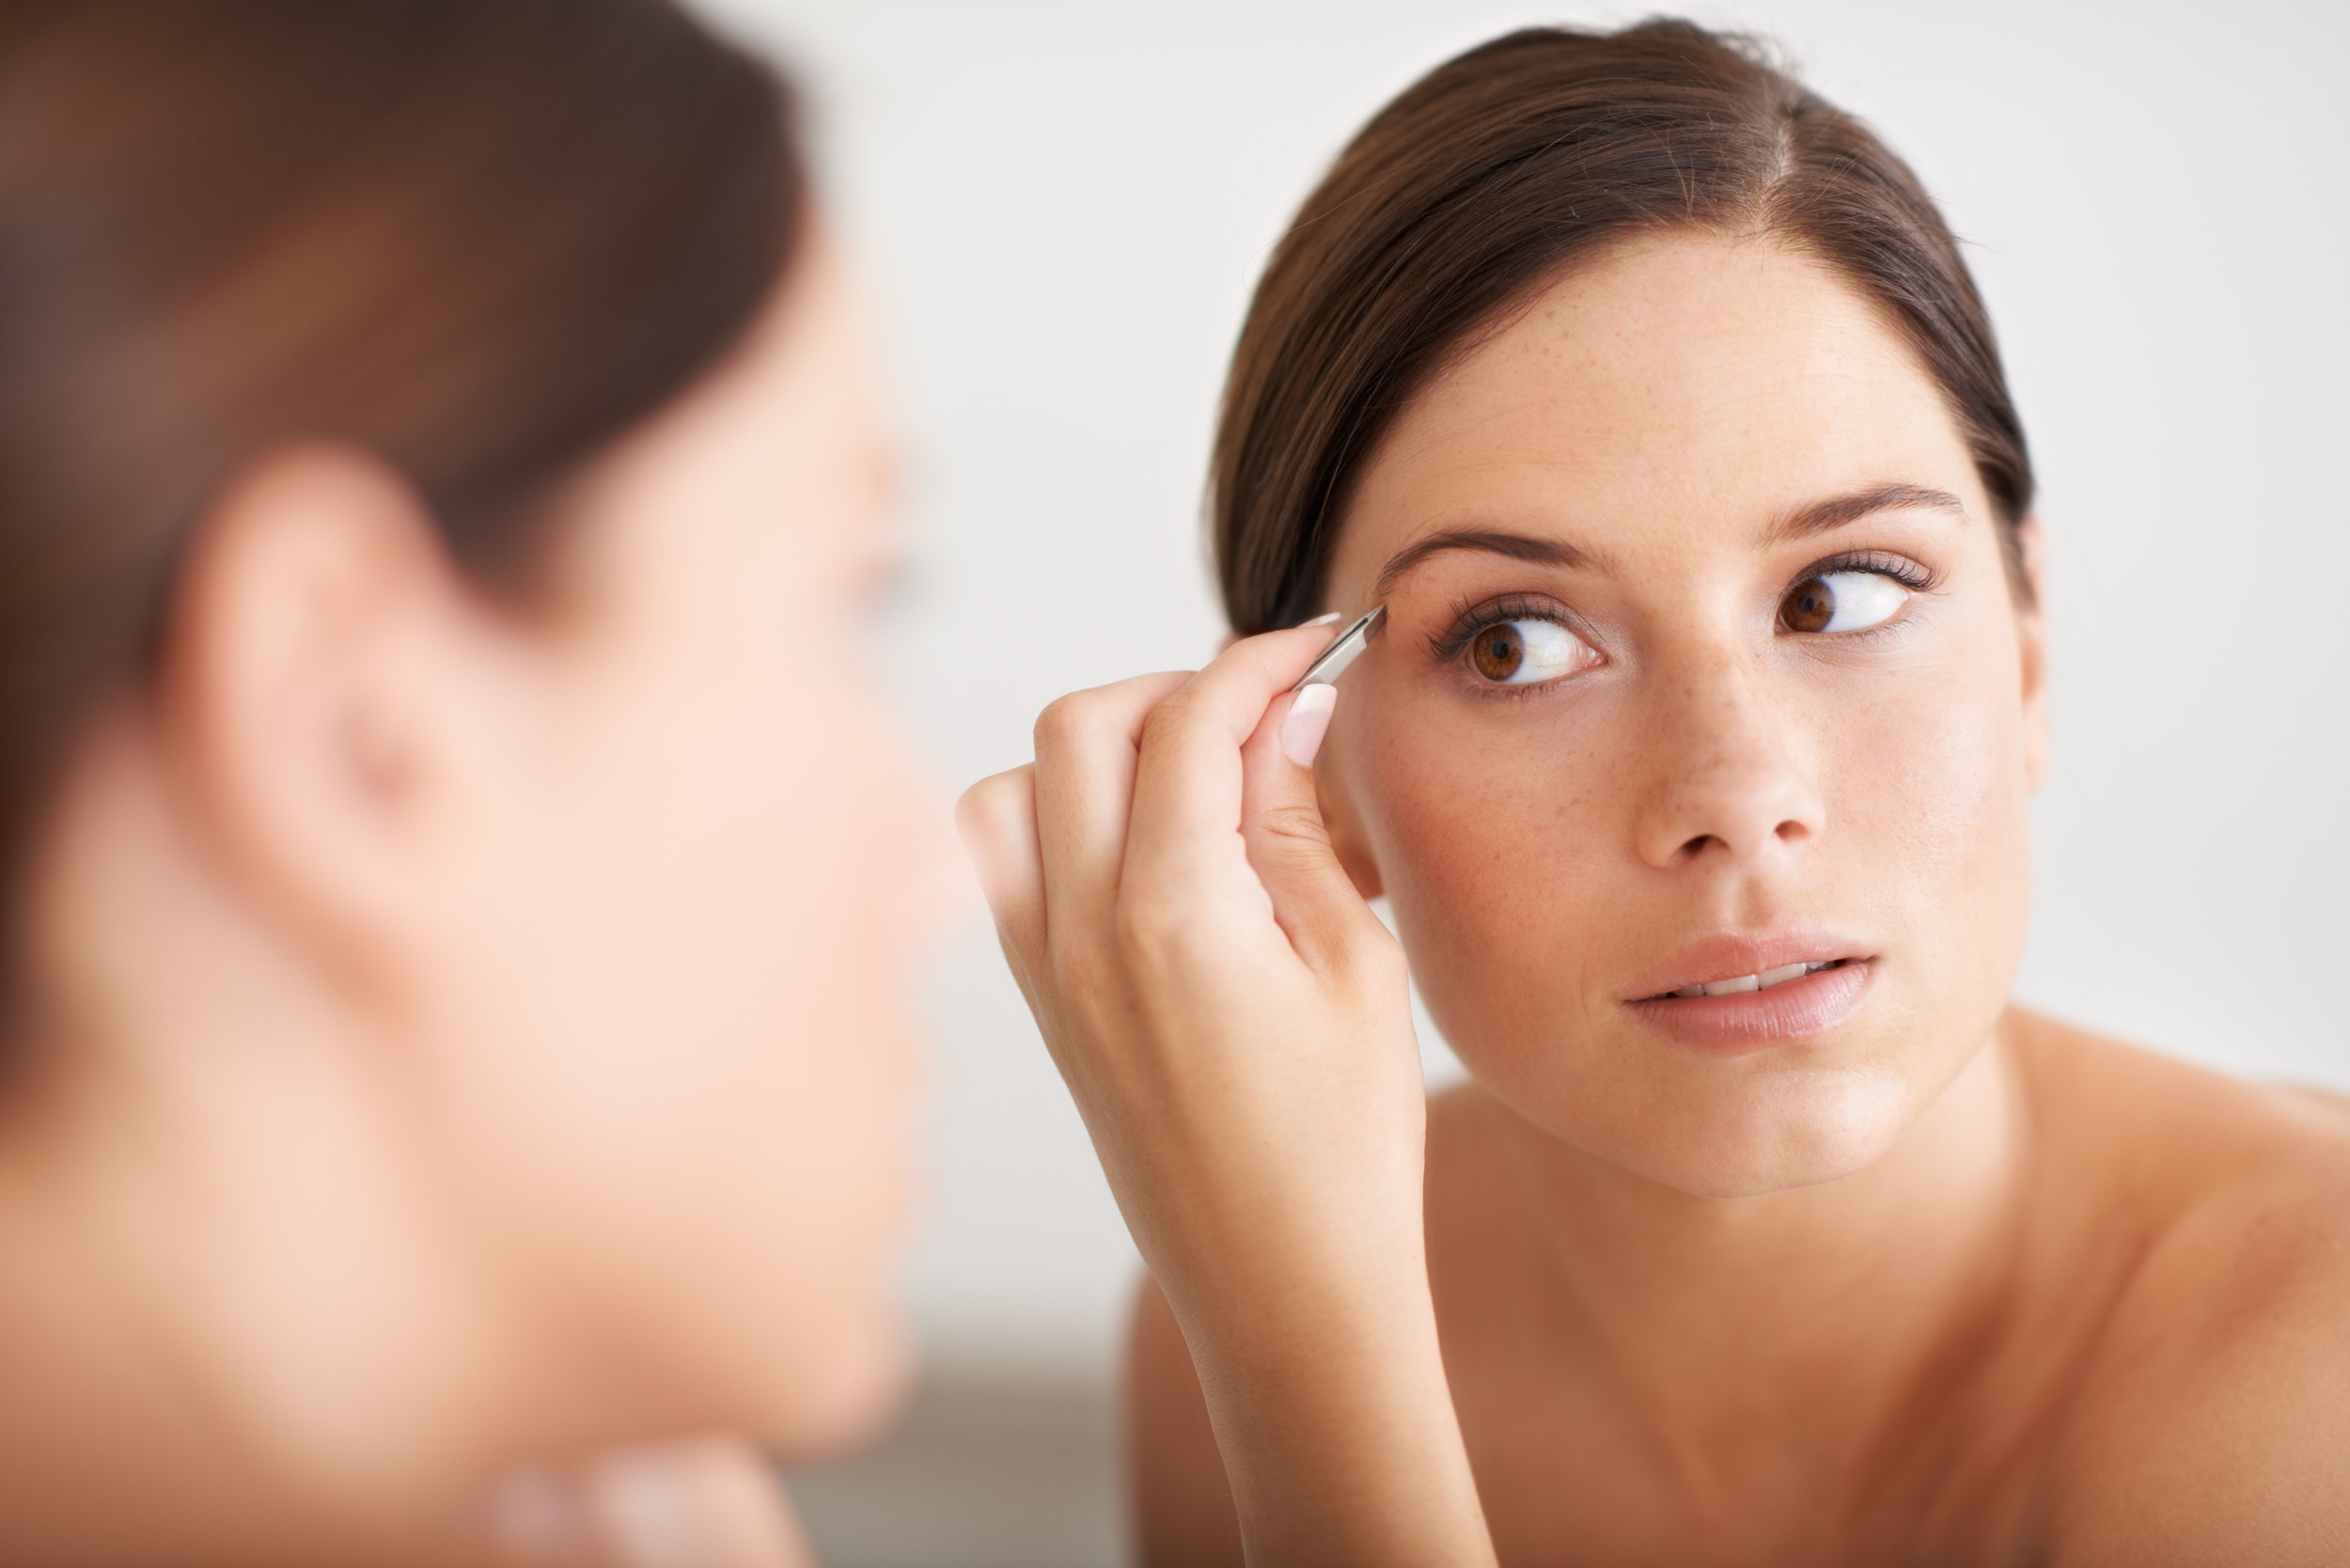 The One Thing You Should Never Do When Tweezing Your Brows